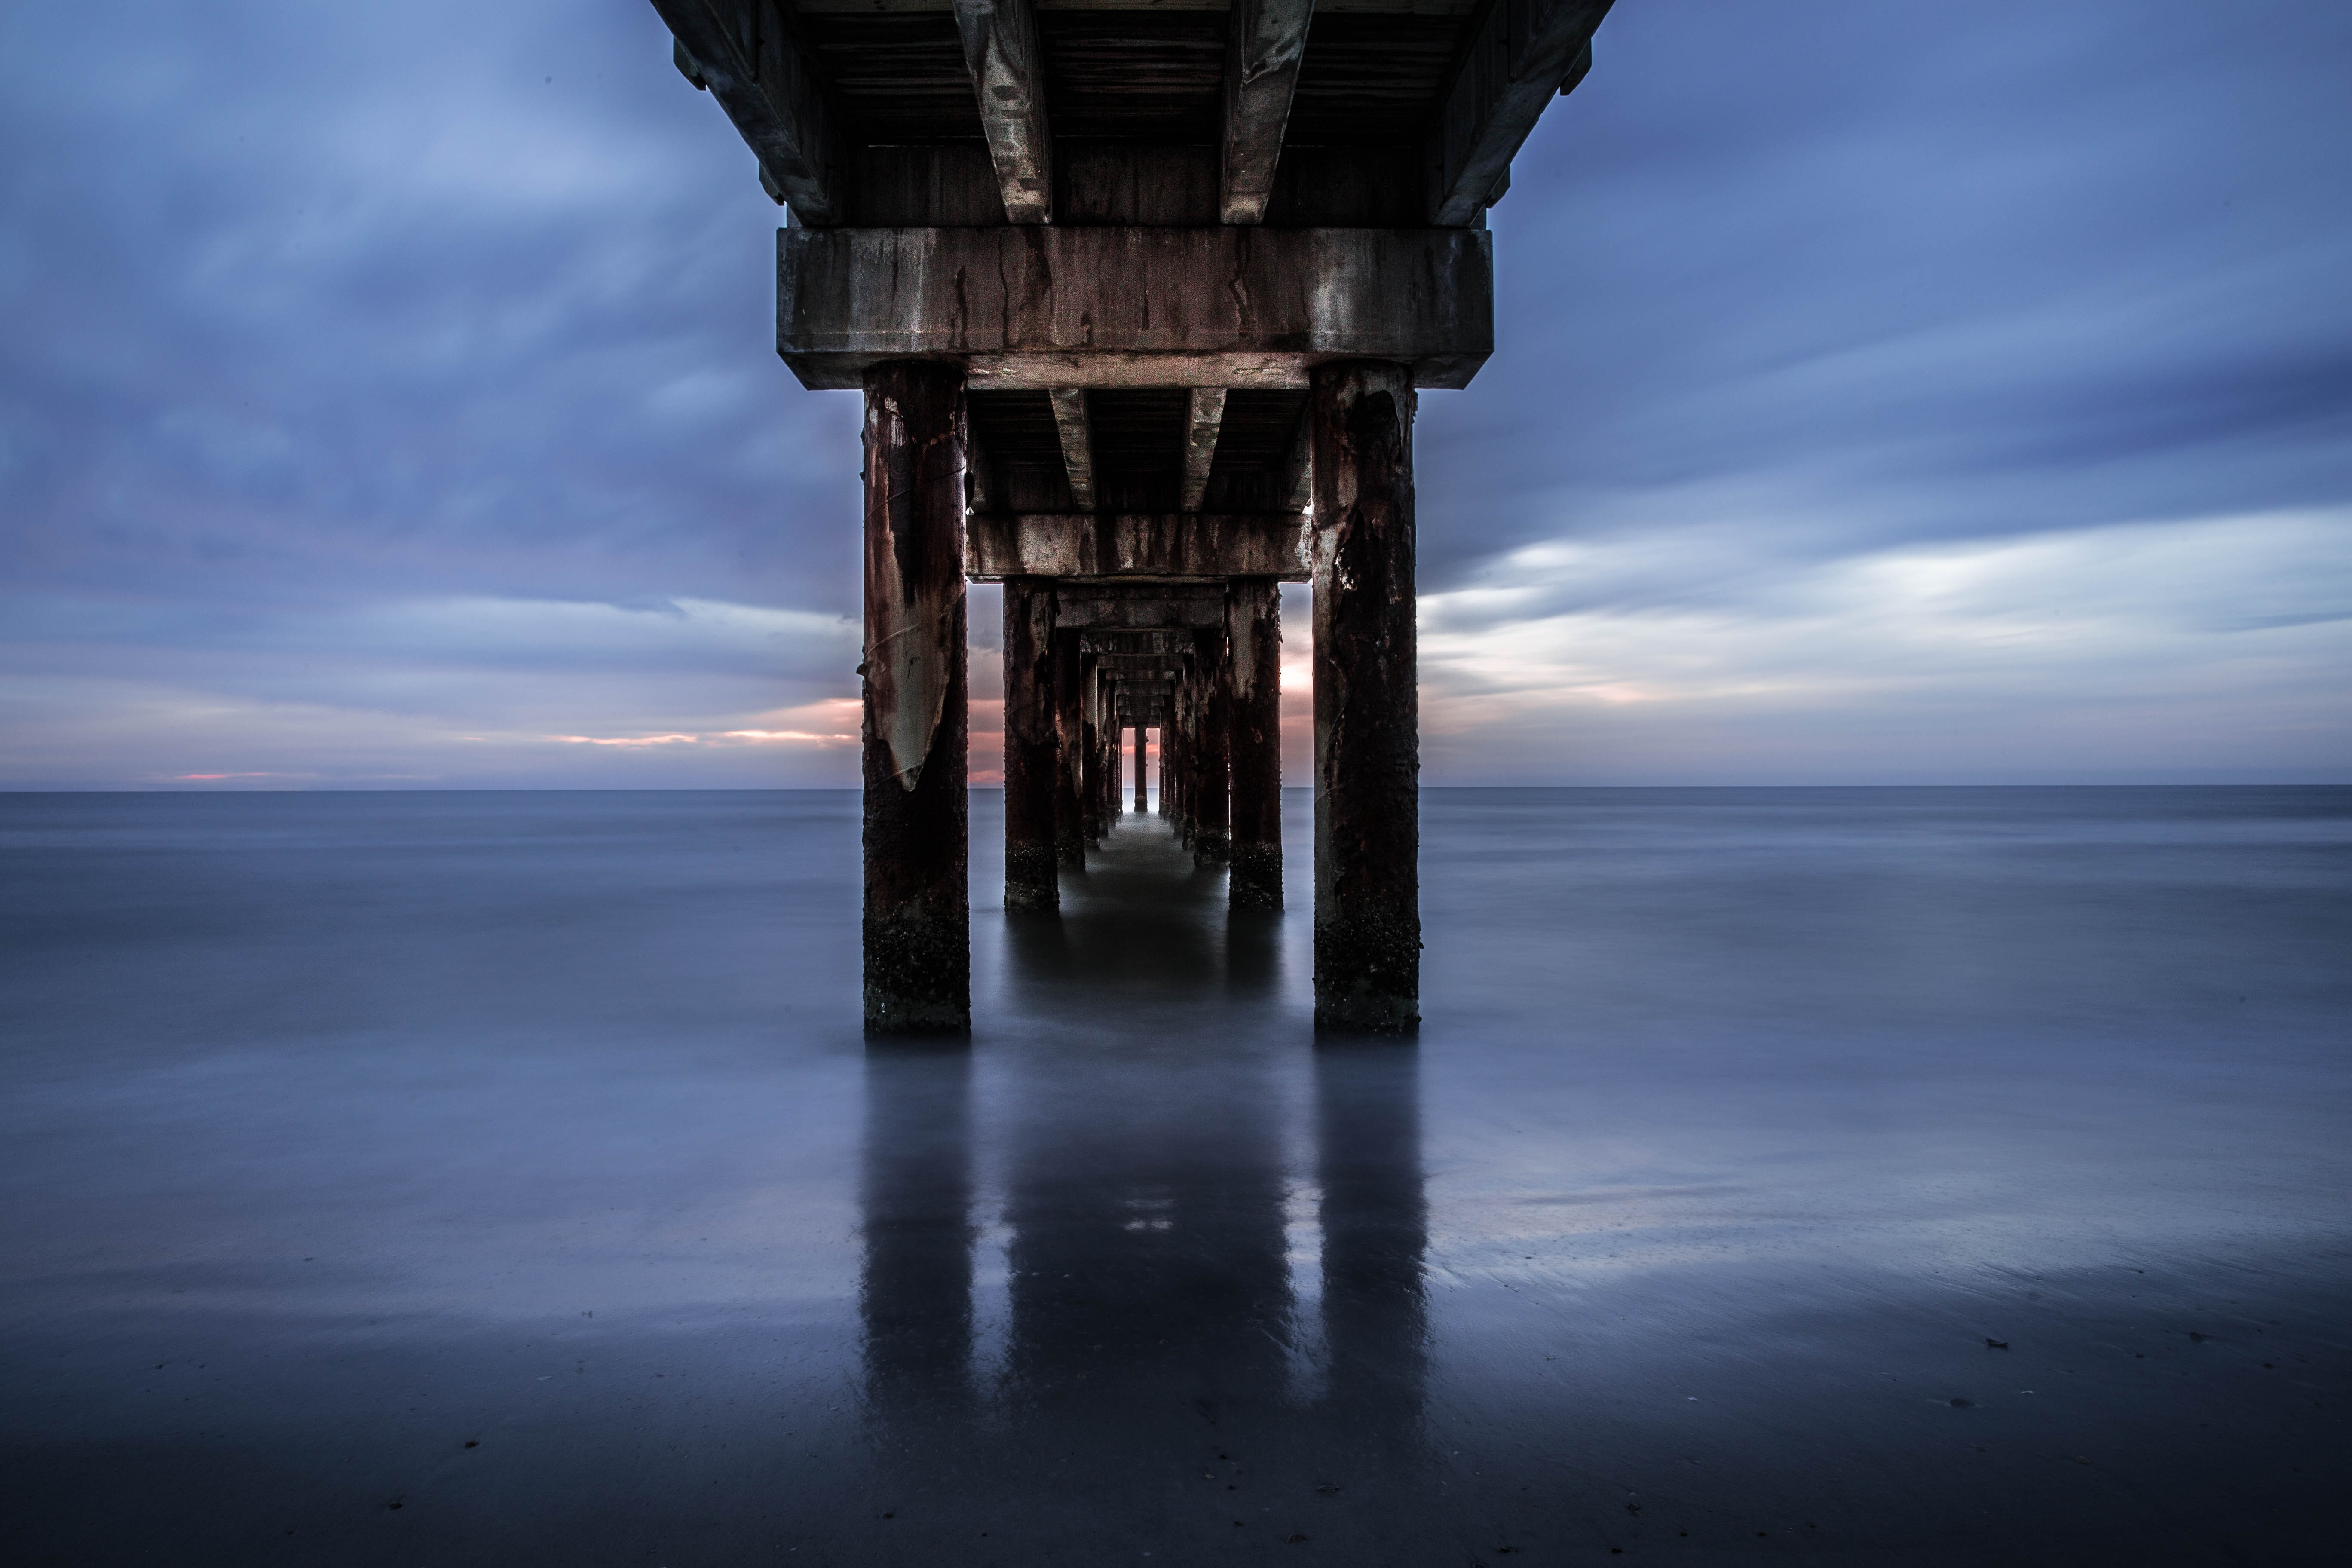 View into the distance under the pier between the pillars at Saint Augustine Beach